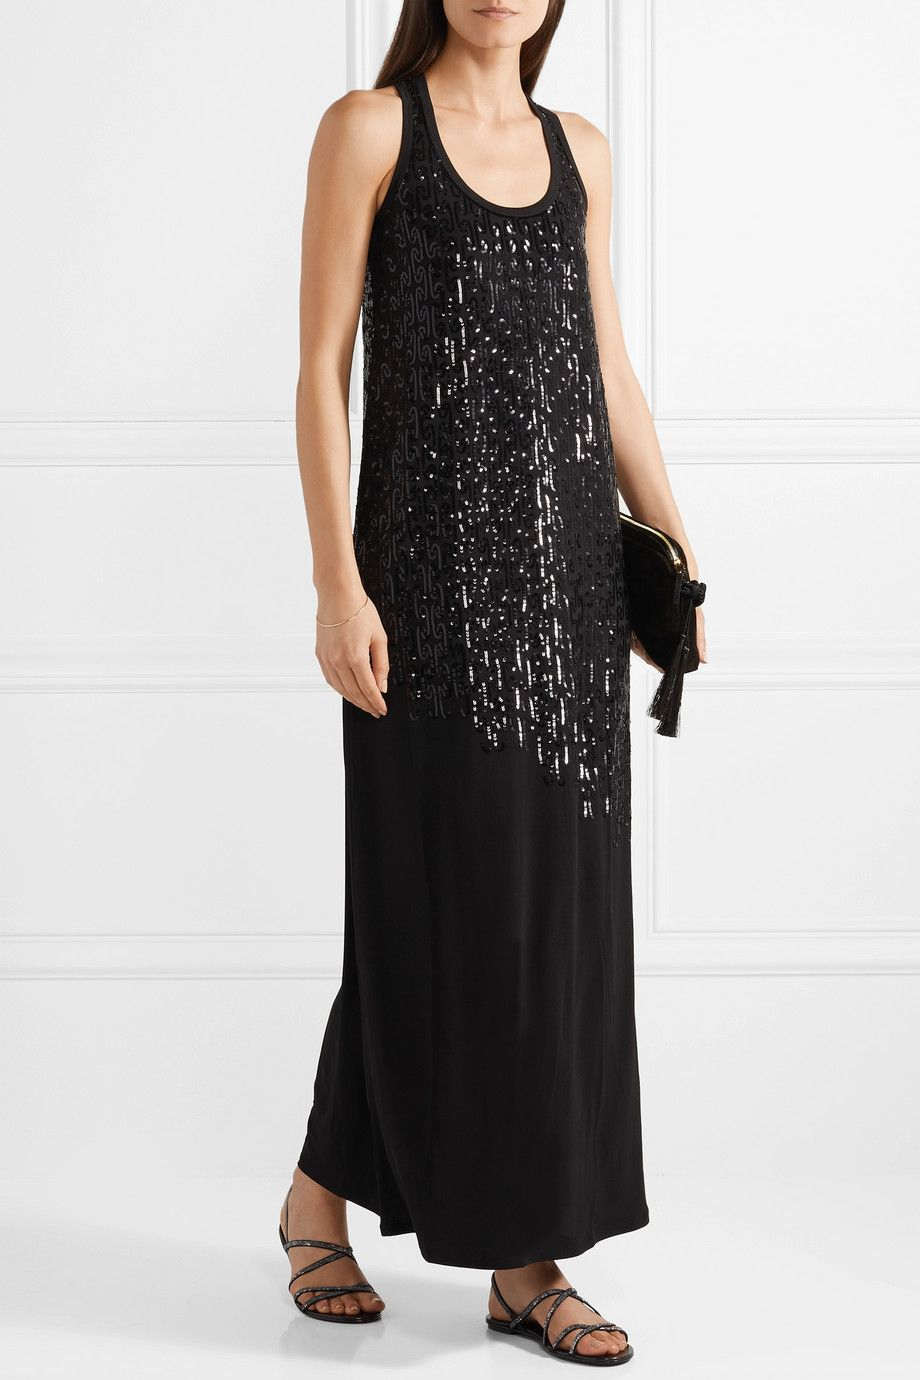 Sequined Stretch-jersey Maxi Dress - Black Marie France Van Damme 2vsscPm3